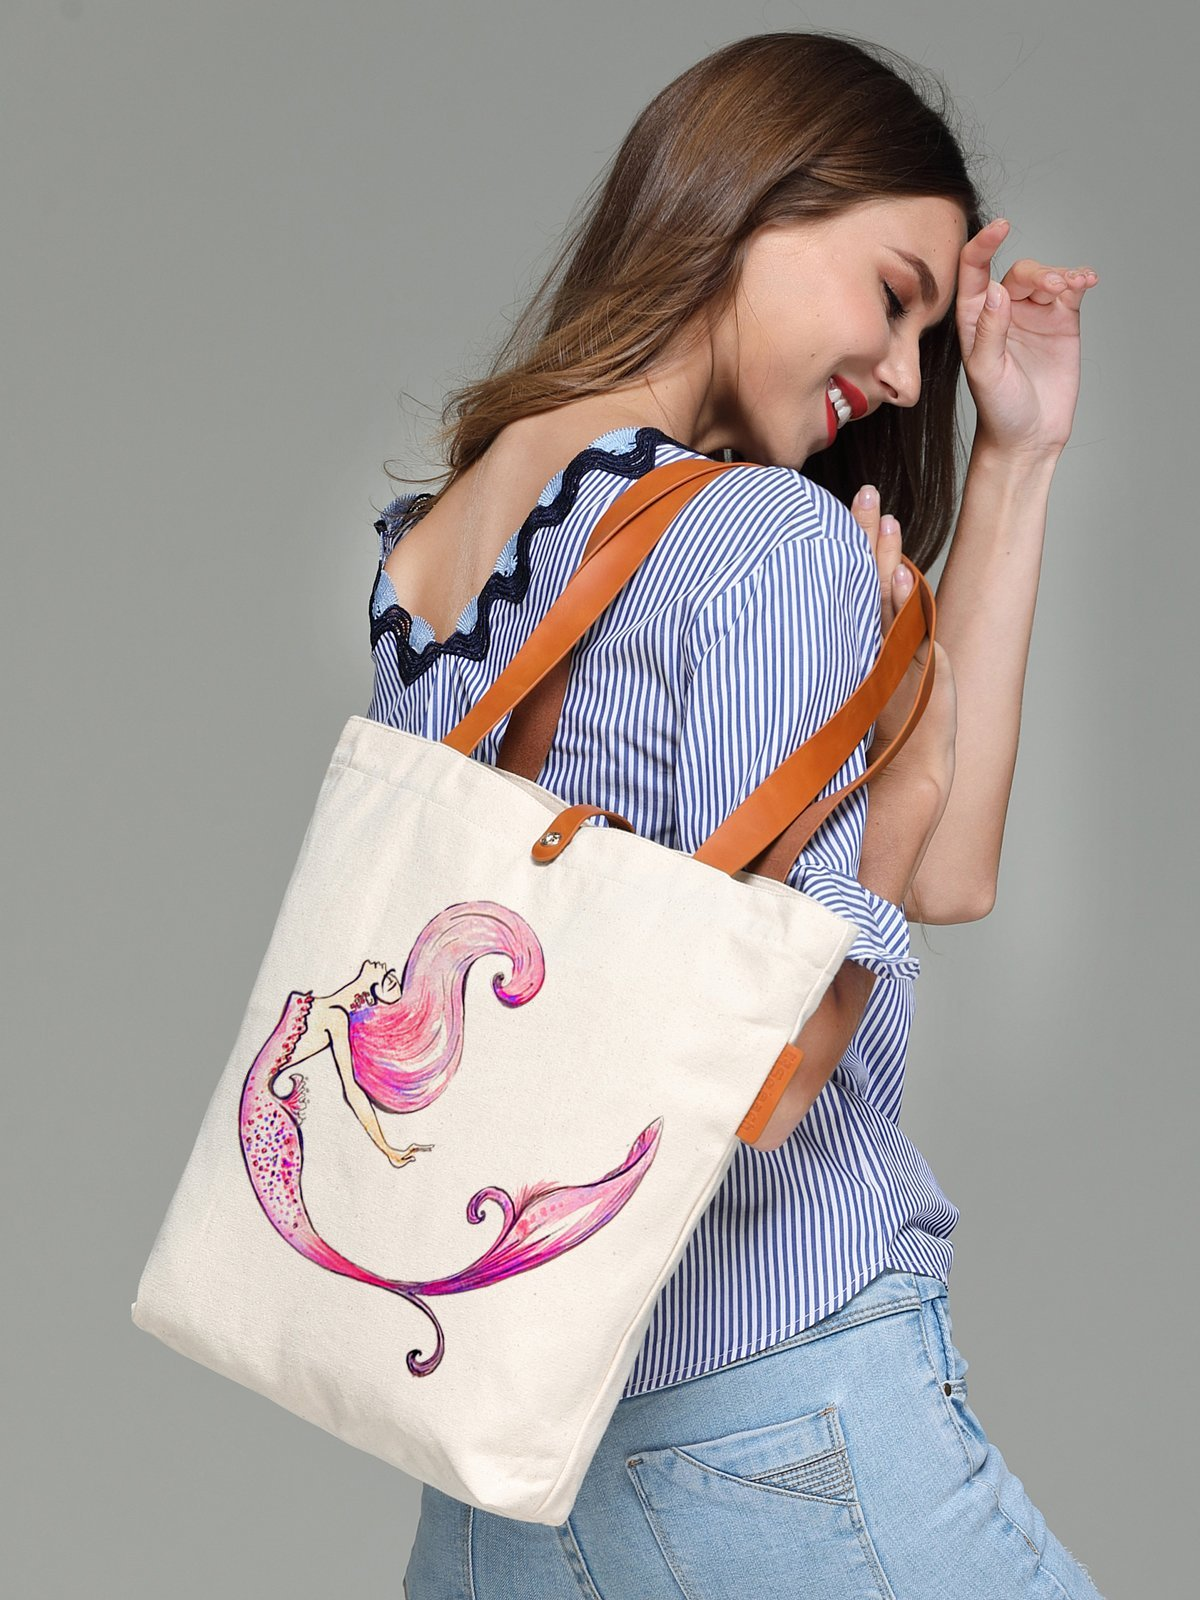 So'each Women's Colourful Mermaid Graphic Canvas Tote Shopper Shoulder Bag by So'each (Image #4)